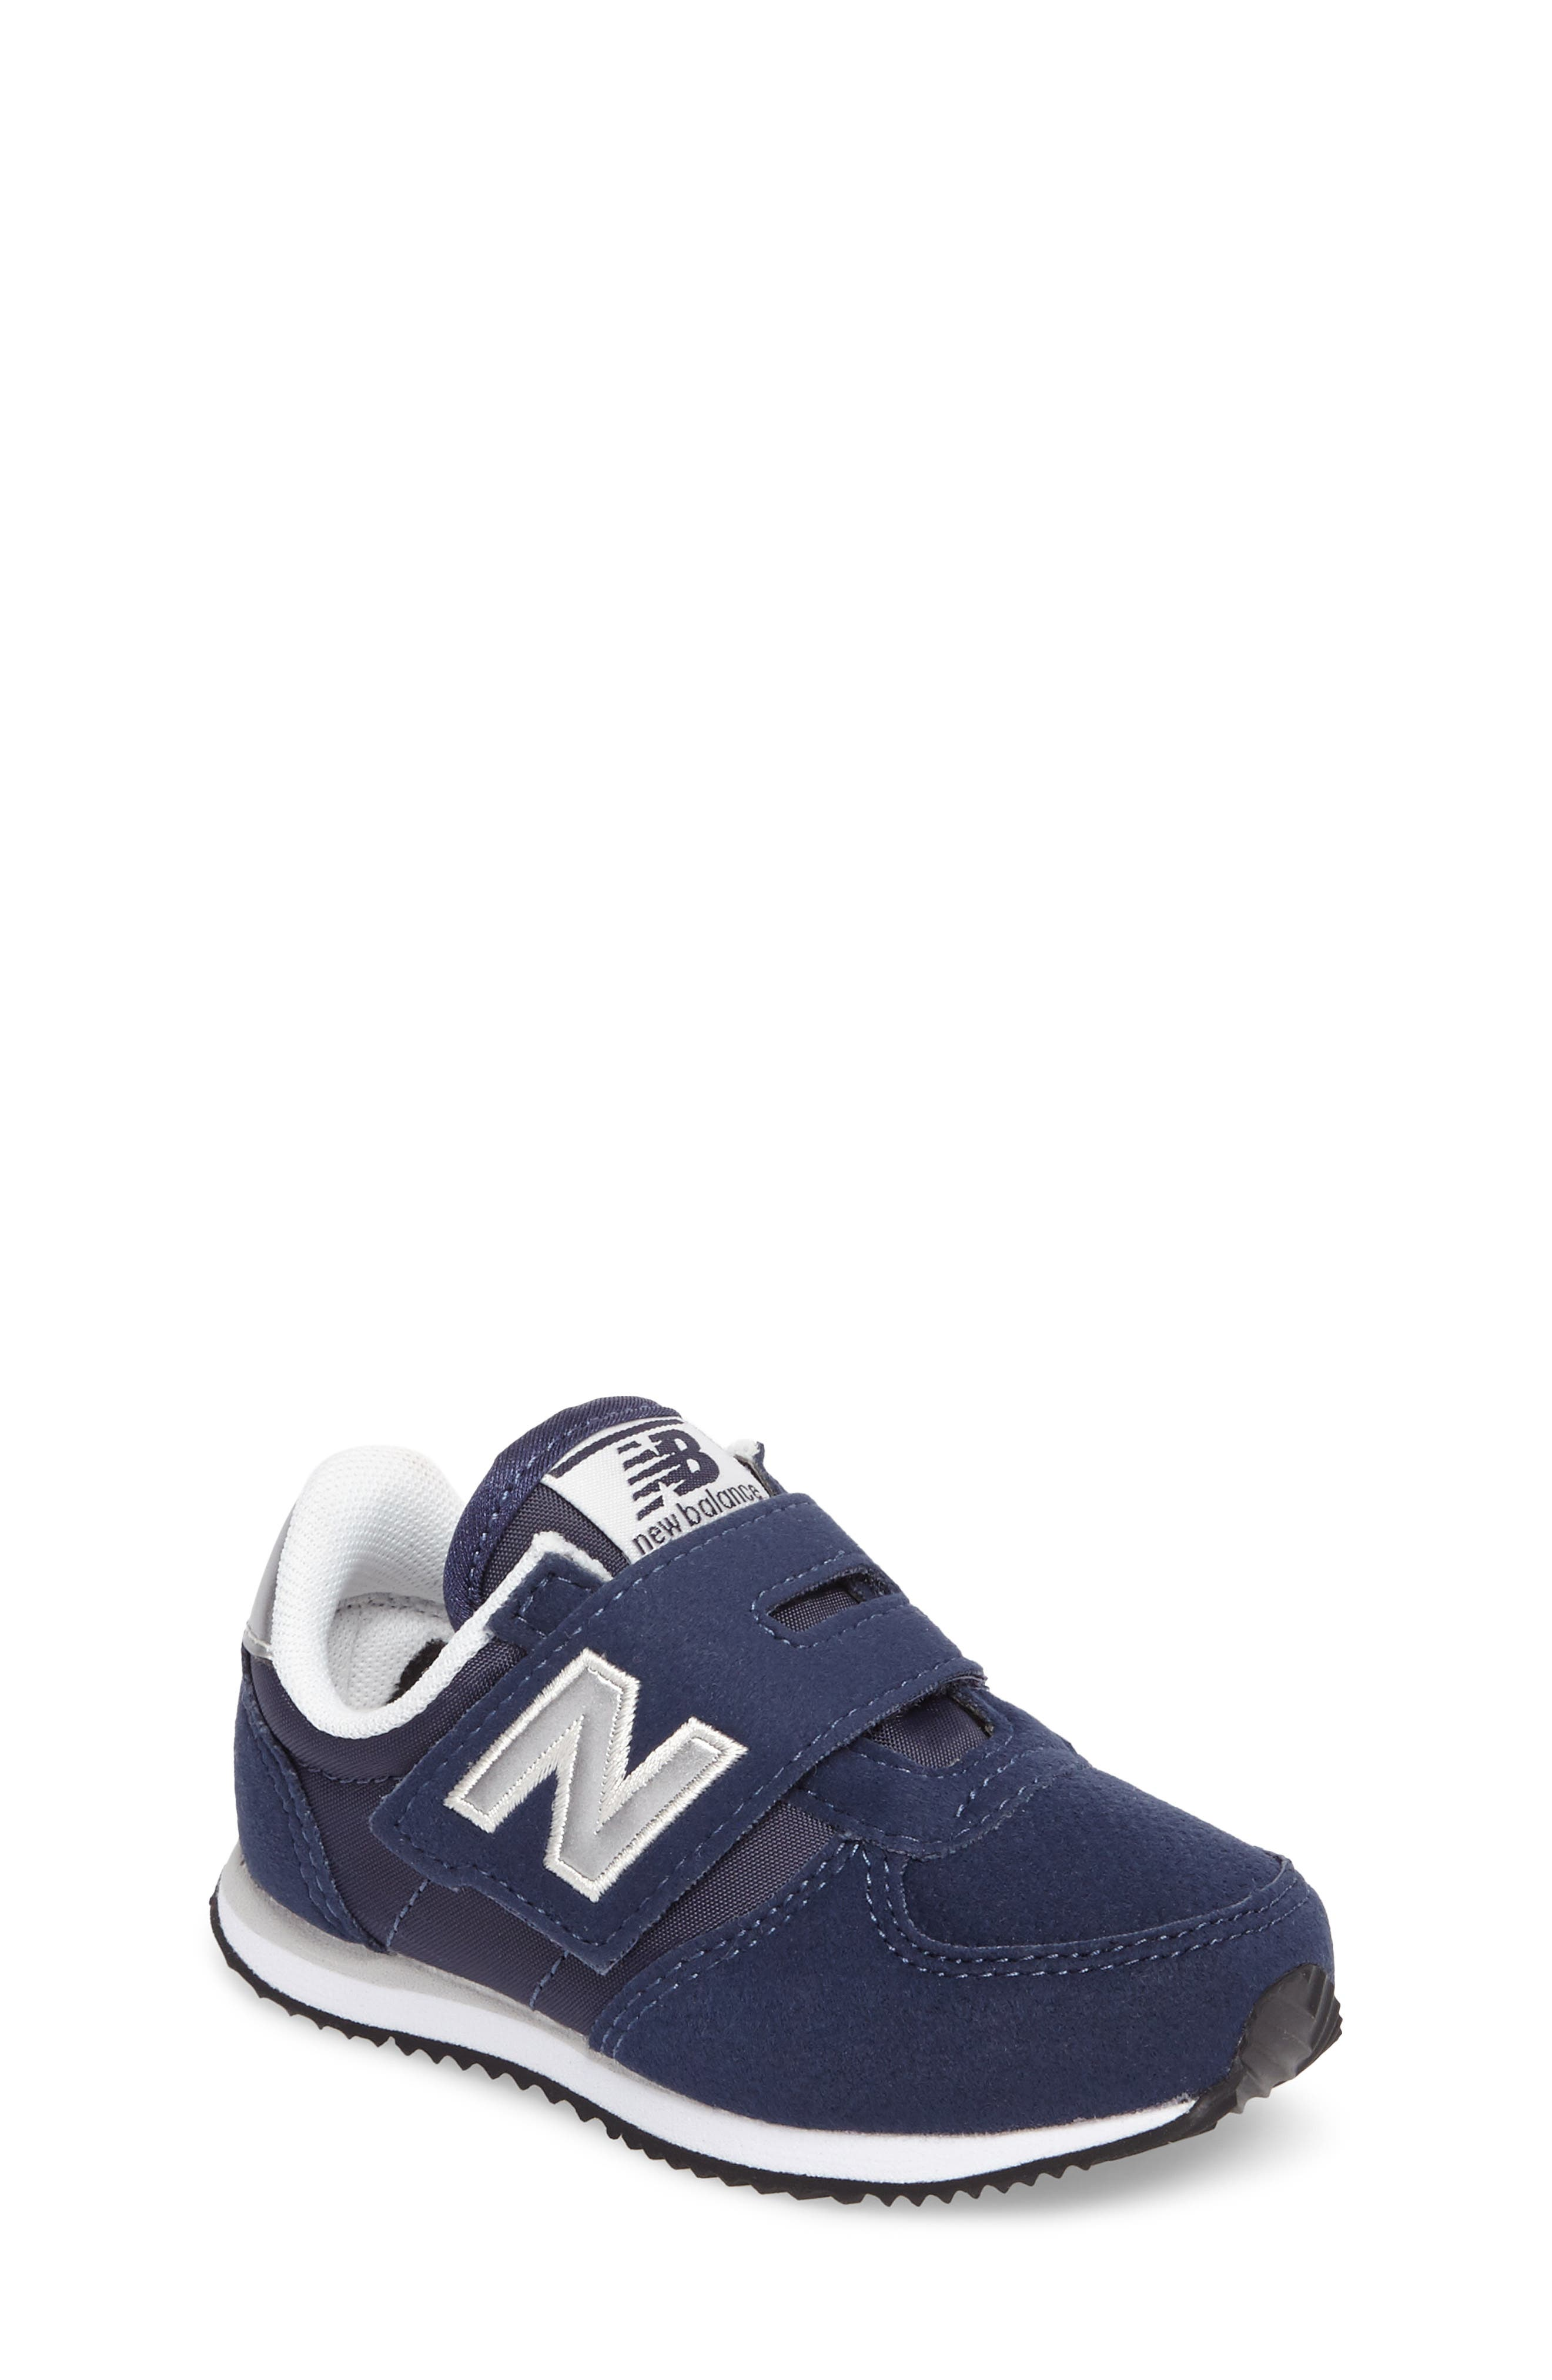 New Balance 220 Hook and Loop Sneaker (Baby, Walker, Toddler, Little Kid & Big Kid)